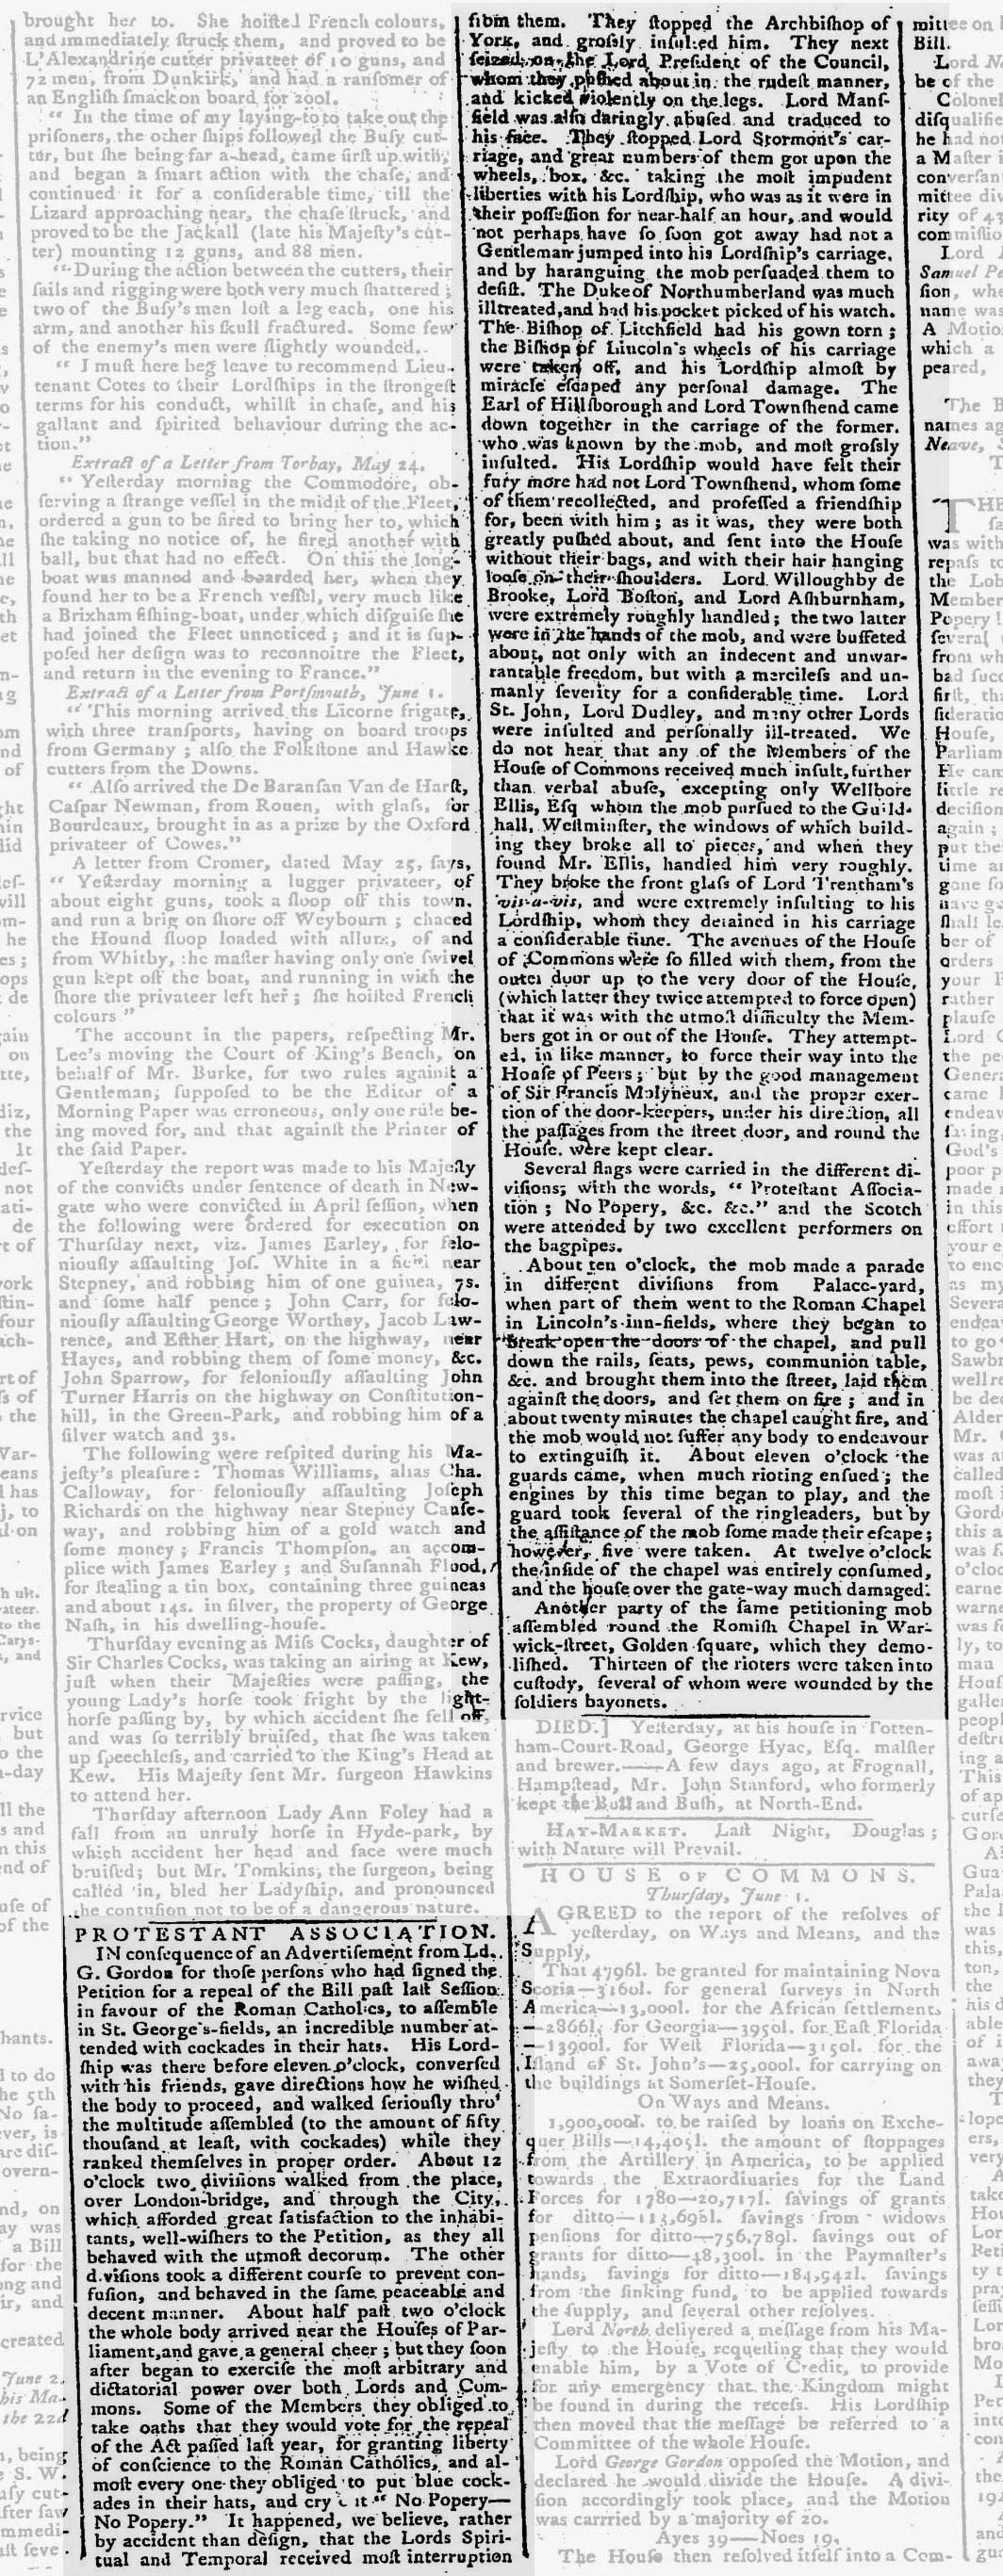 Newspaper report of the Gordon riots, 1780